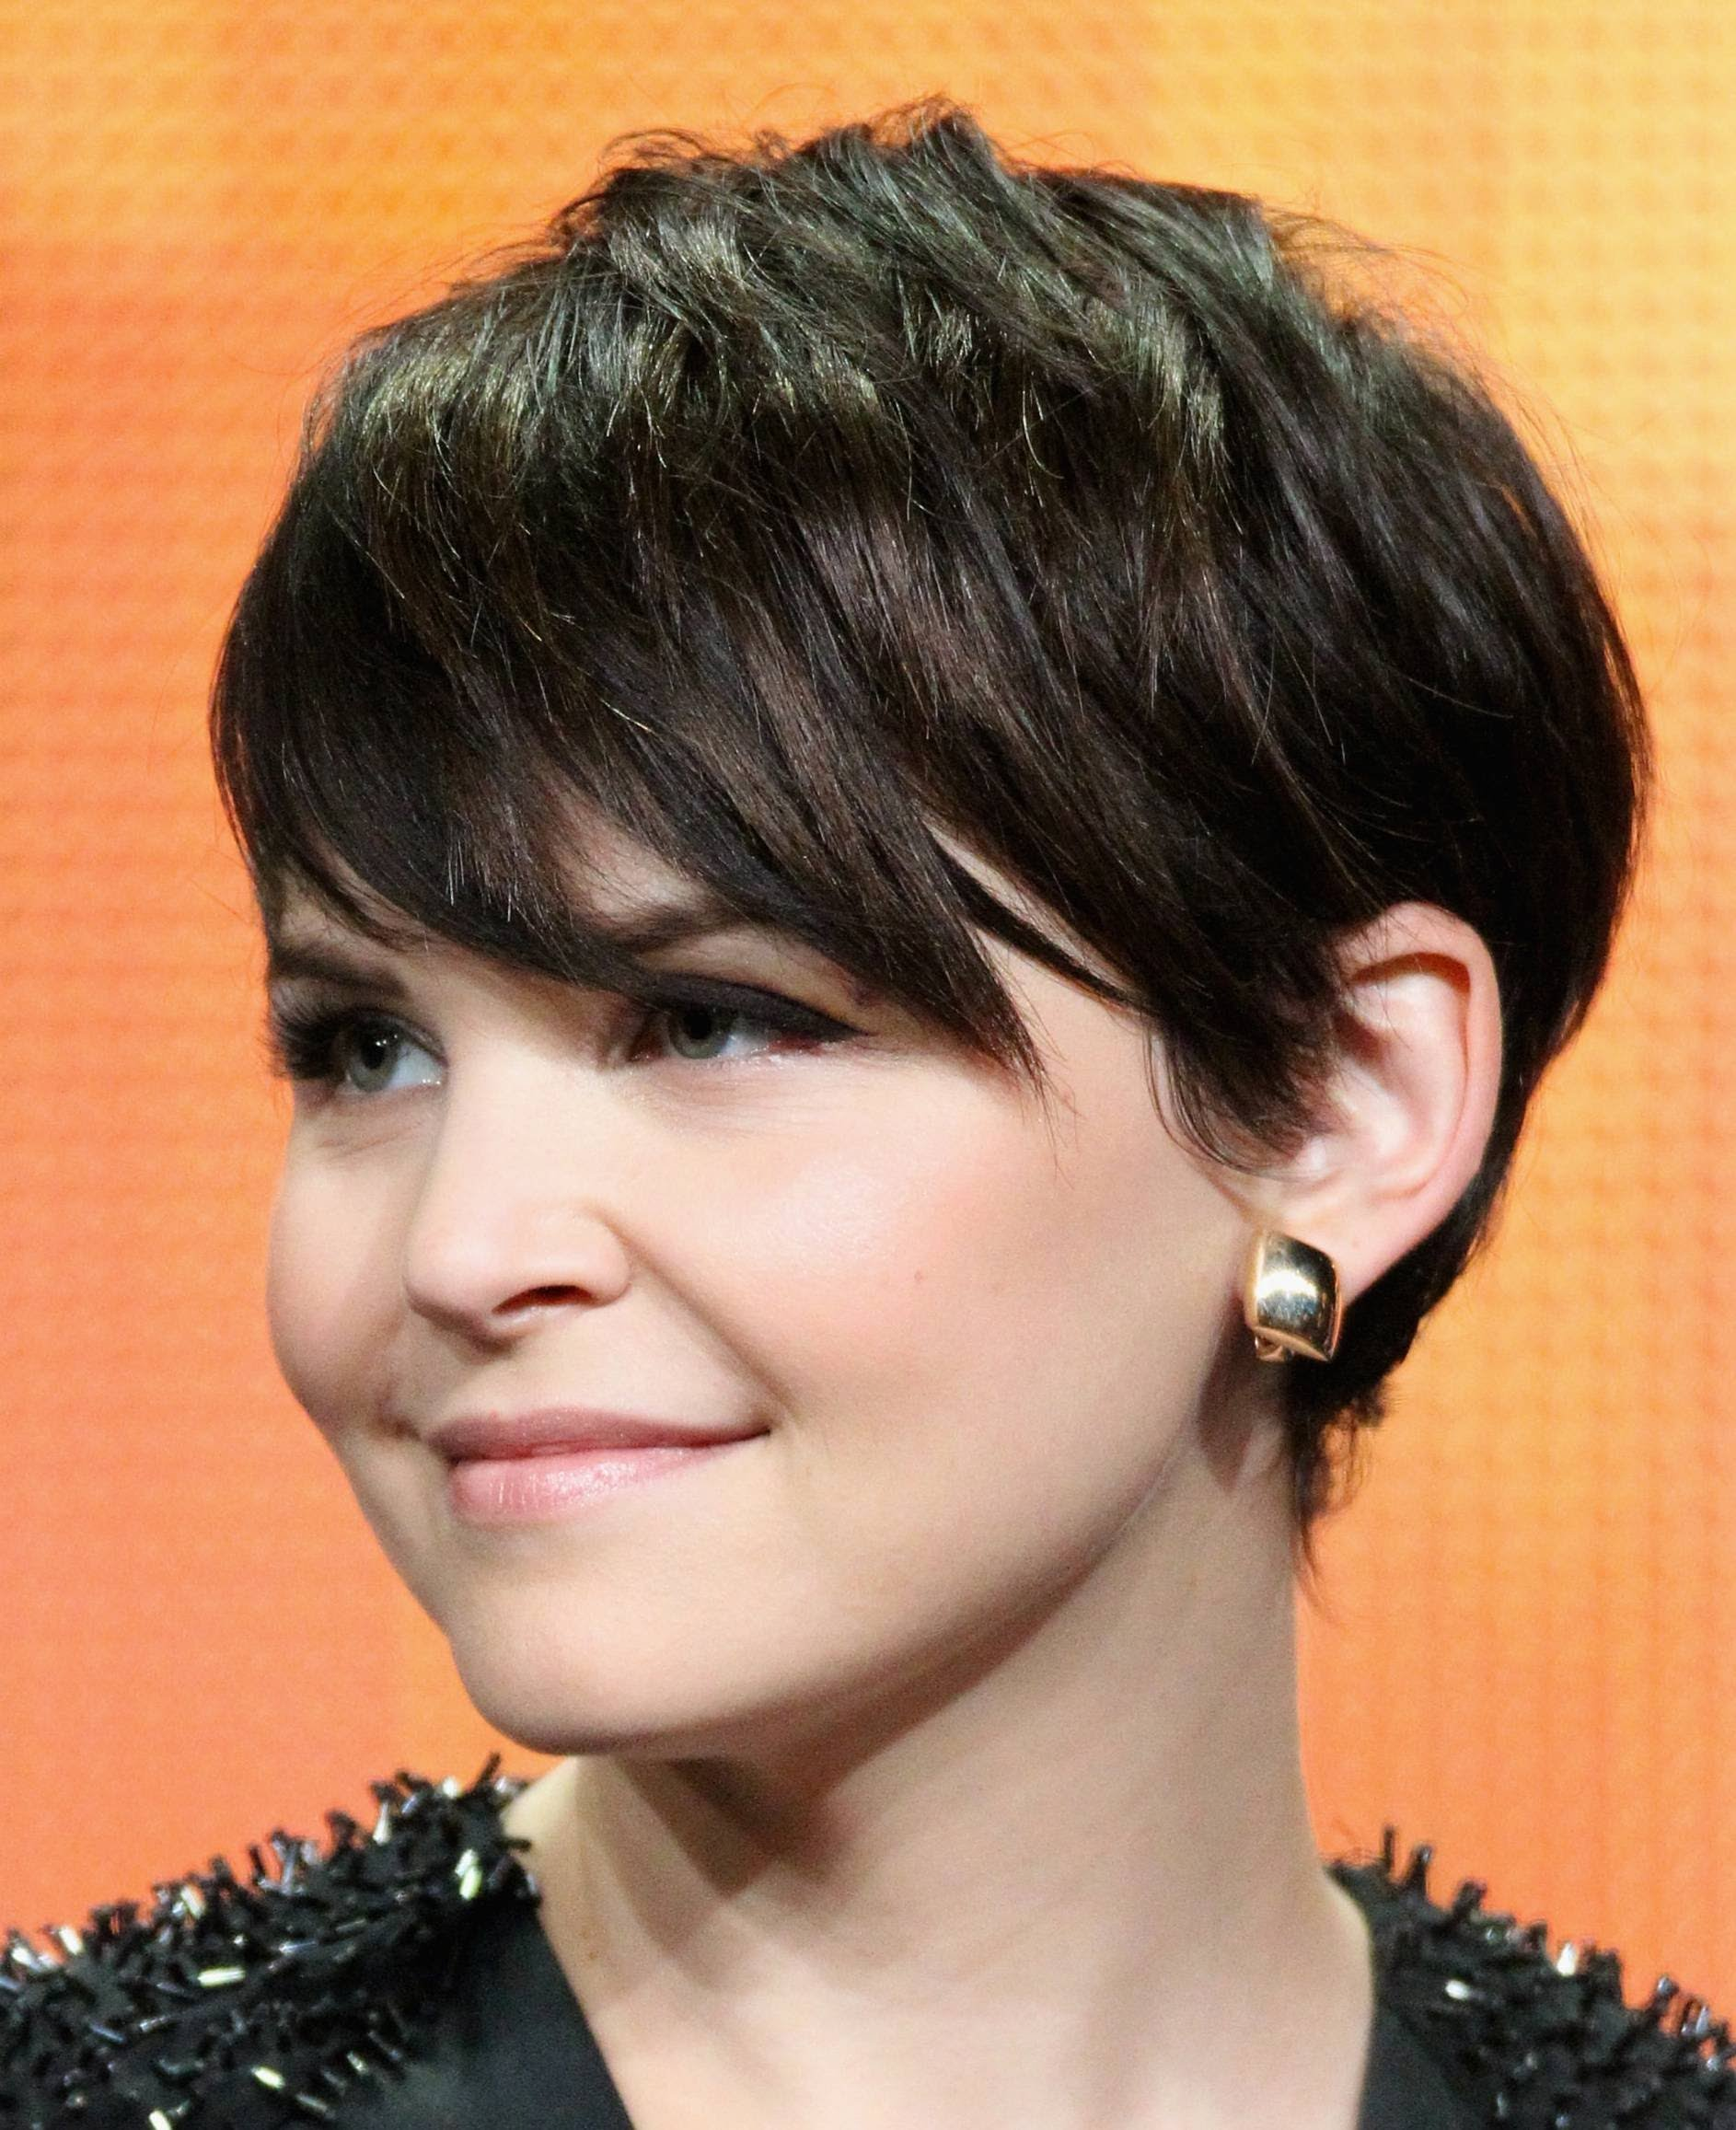 Magnificent Pixie Haircut The Ultimate Pixie Cuts Guide Short Hairstyles Gunalazisus